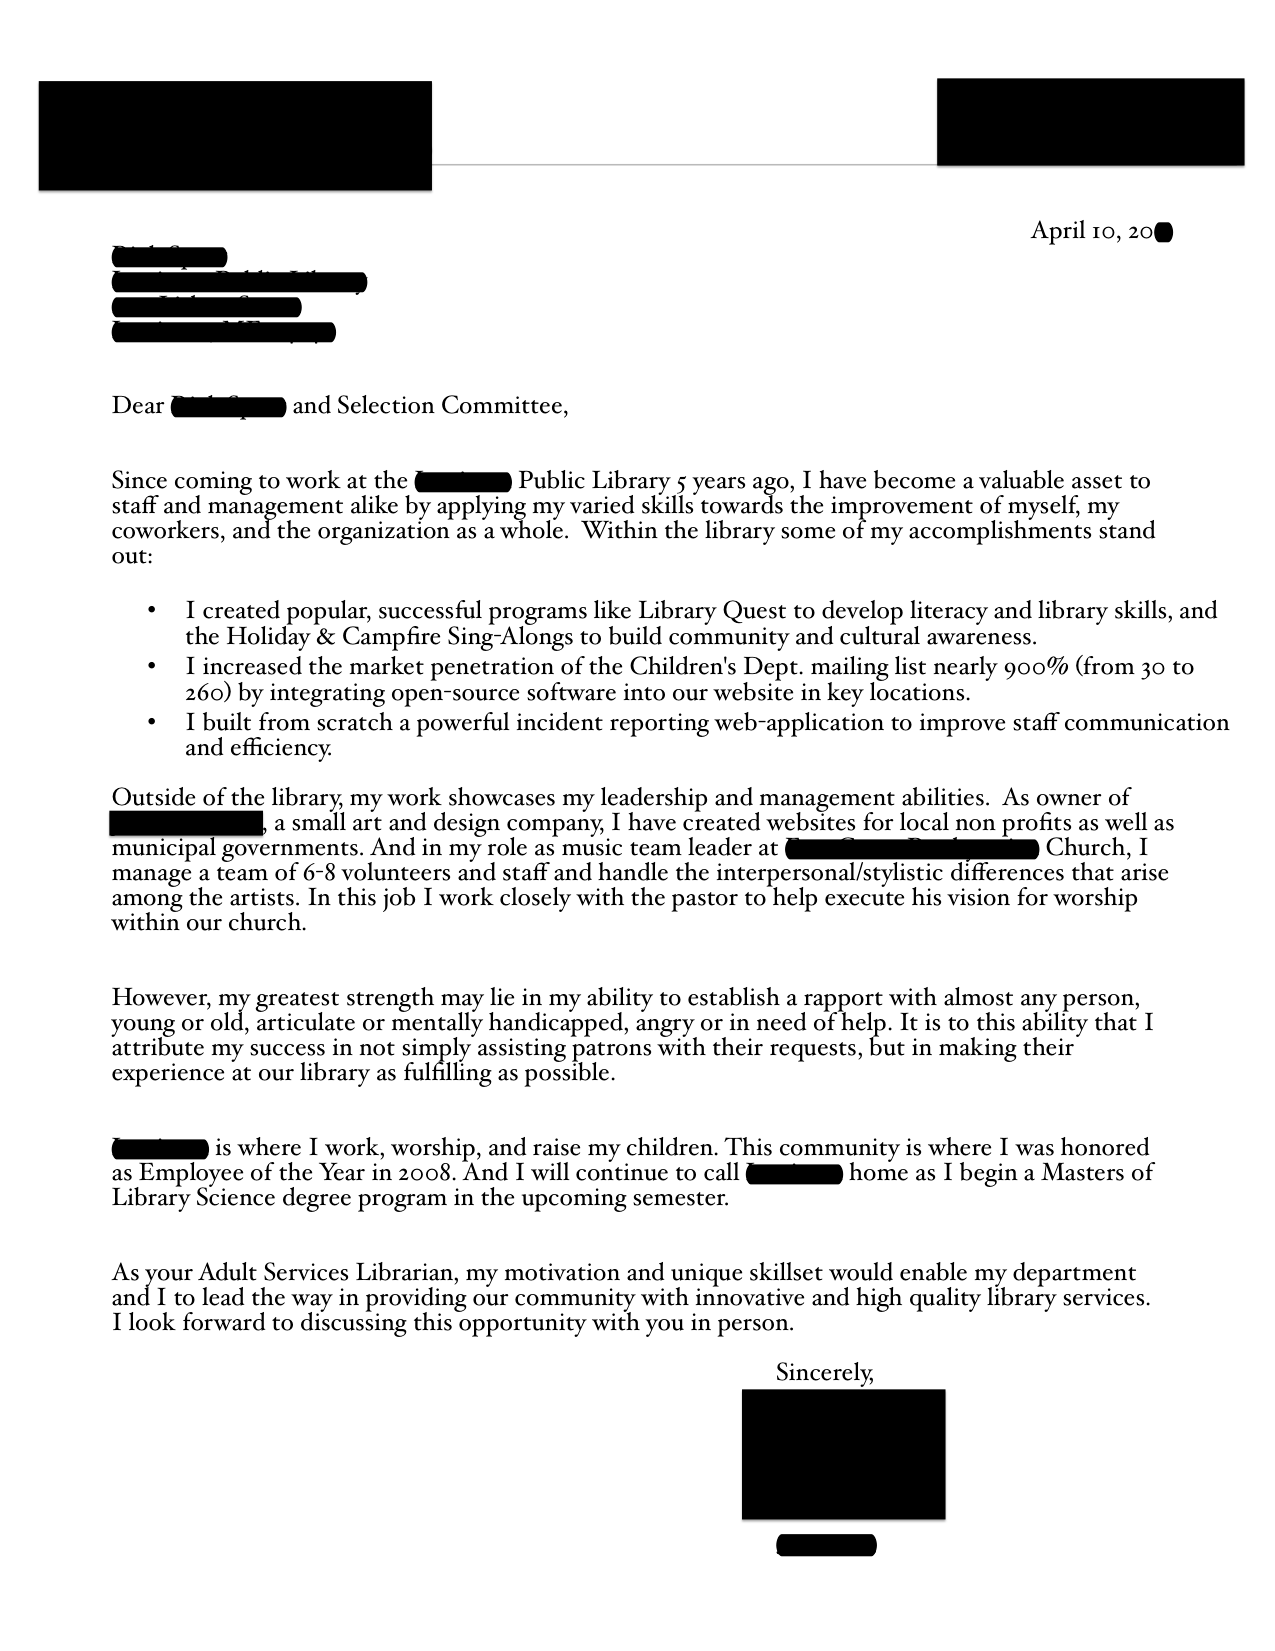 Adult Services Librarian resume and cover letter  Open Cover Letters